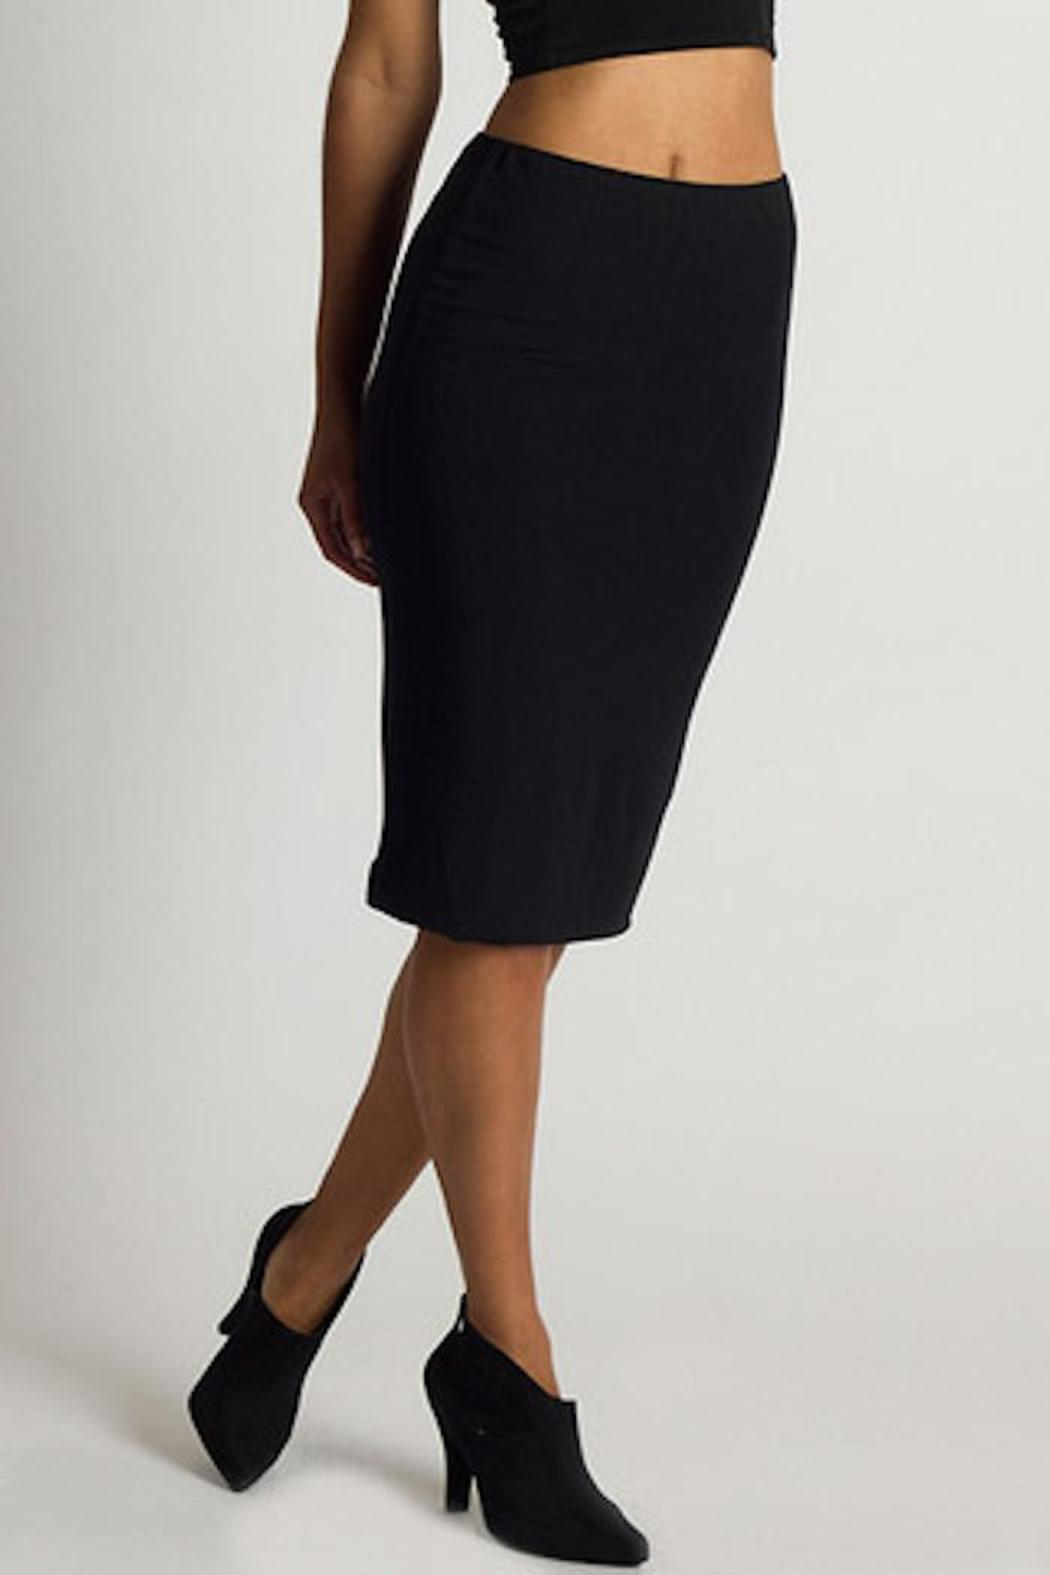 amour vert yuma pencil skirt from new orleans by vine